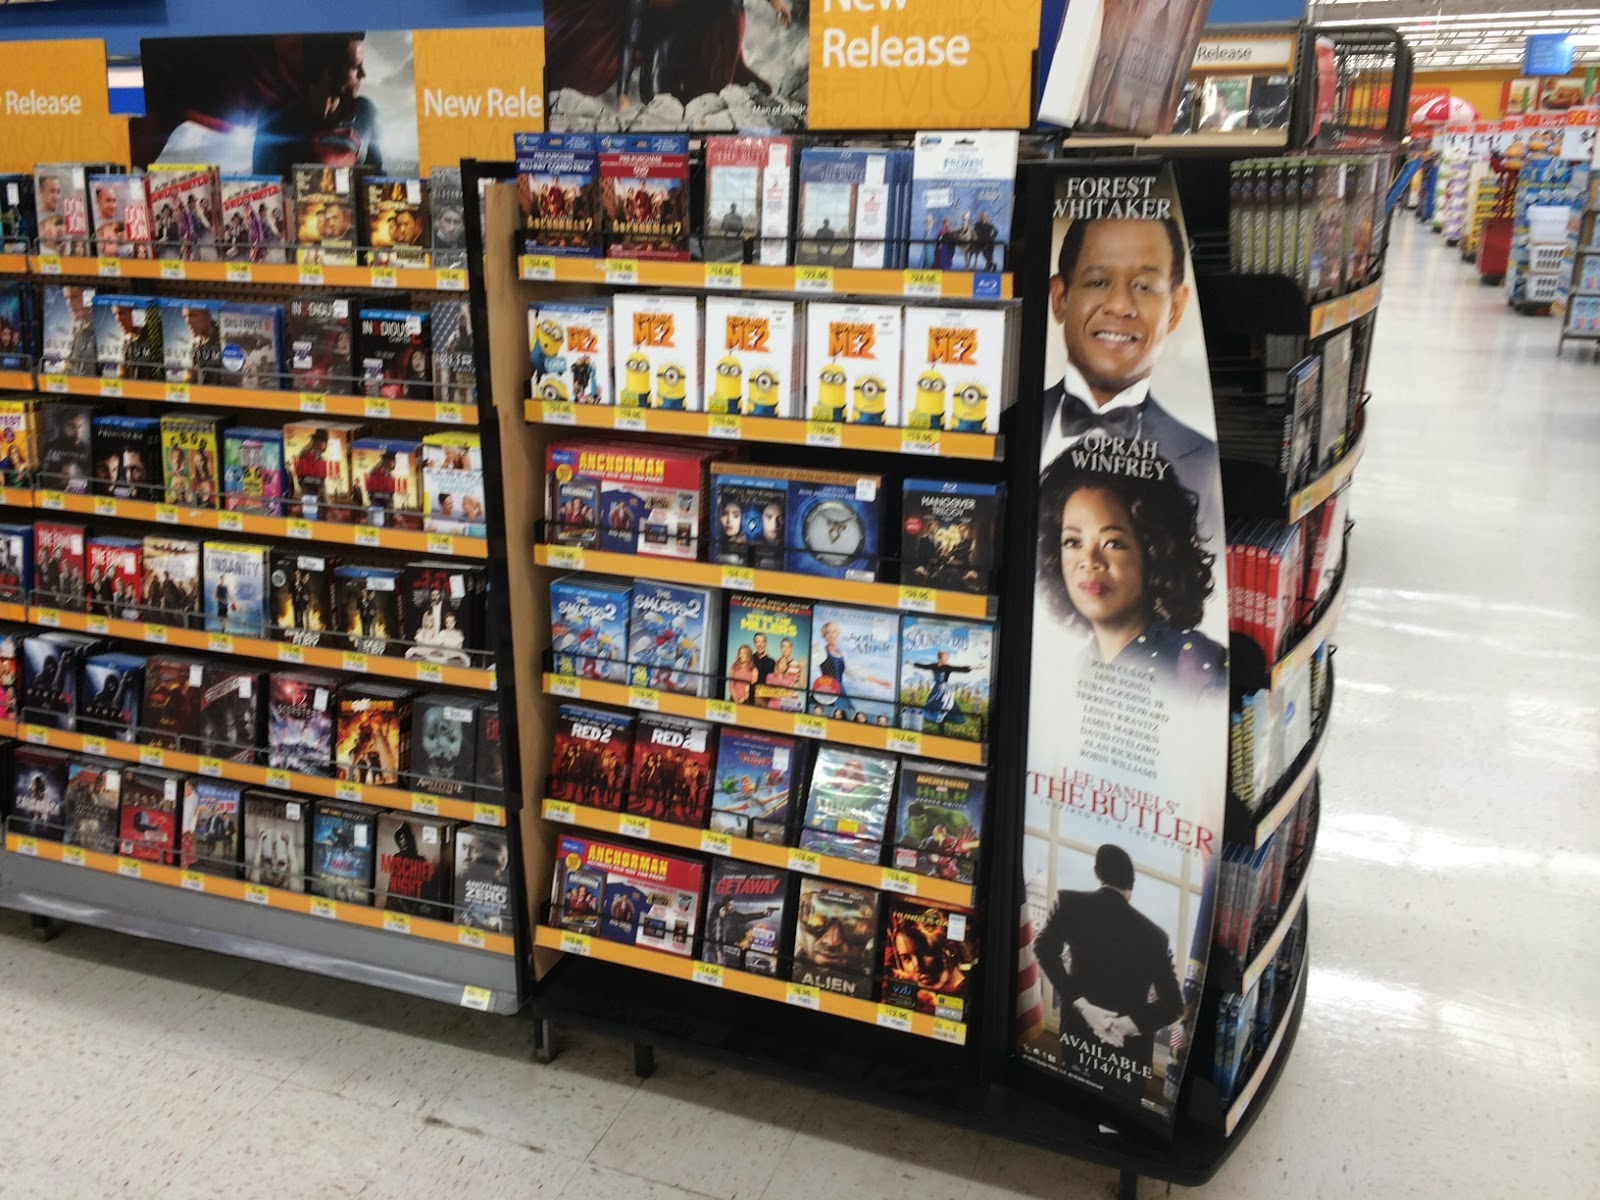 Dvds At Walmart Pictures to Pin on Pinterest - ThePinsta - photo#23